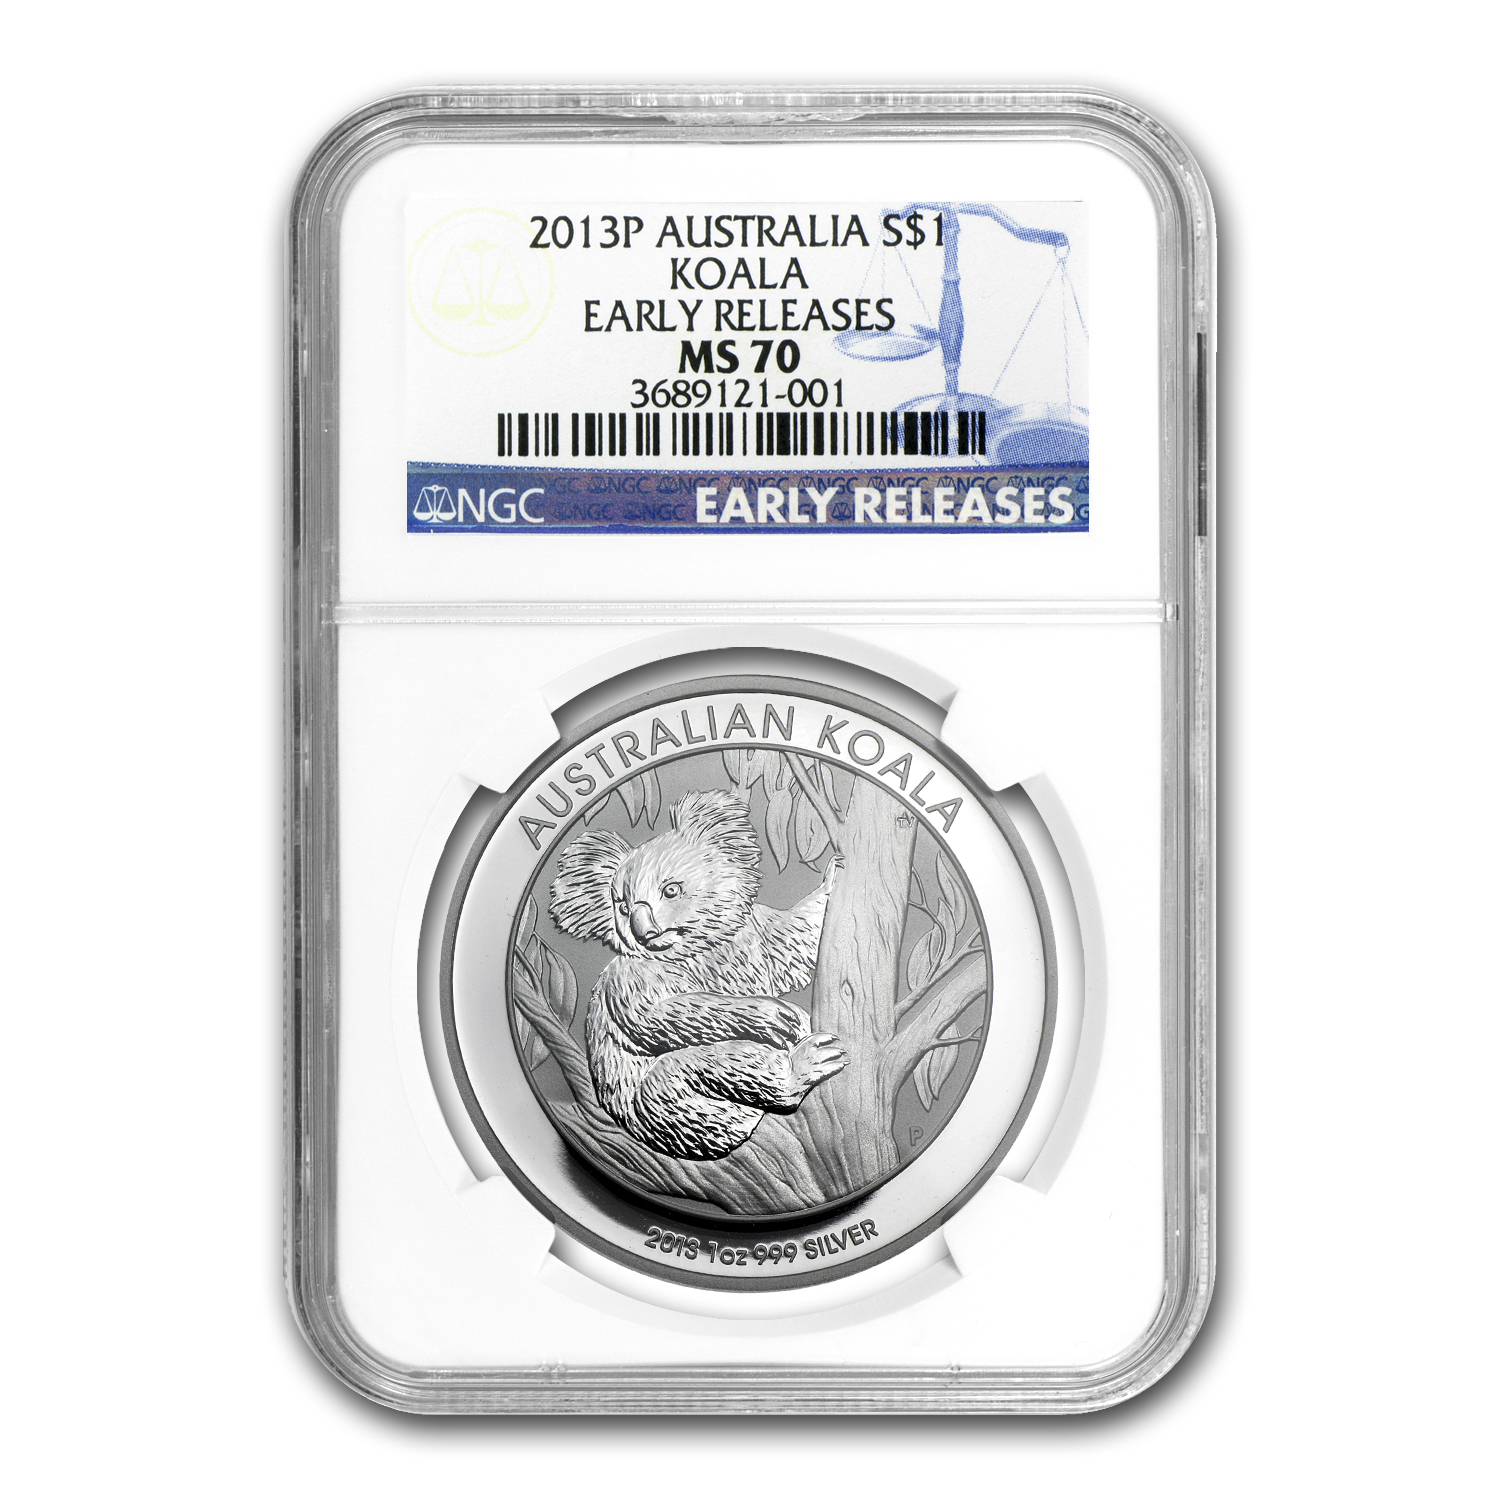 2013 Australia 1 oz Silver Koala MS-70 NGC (Early Release)